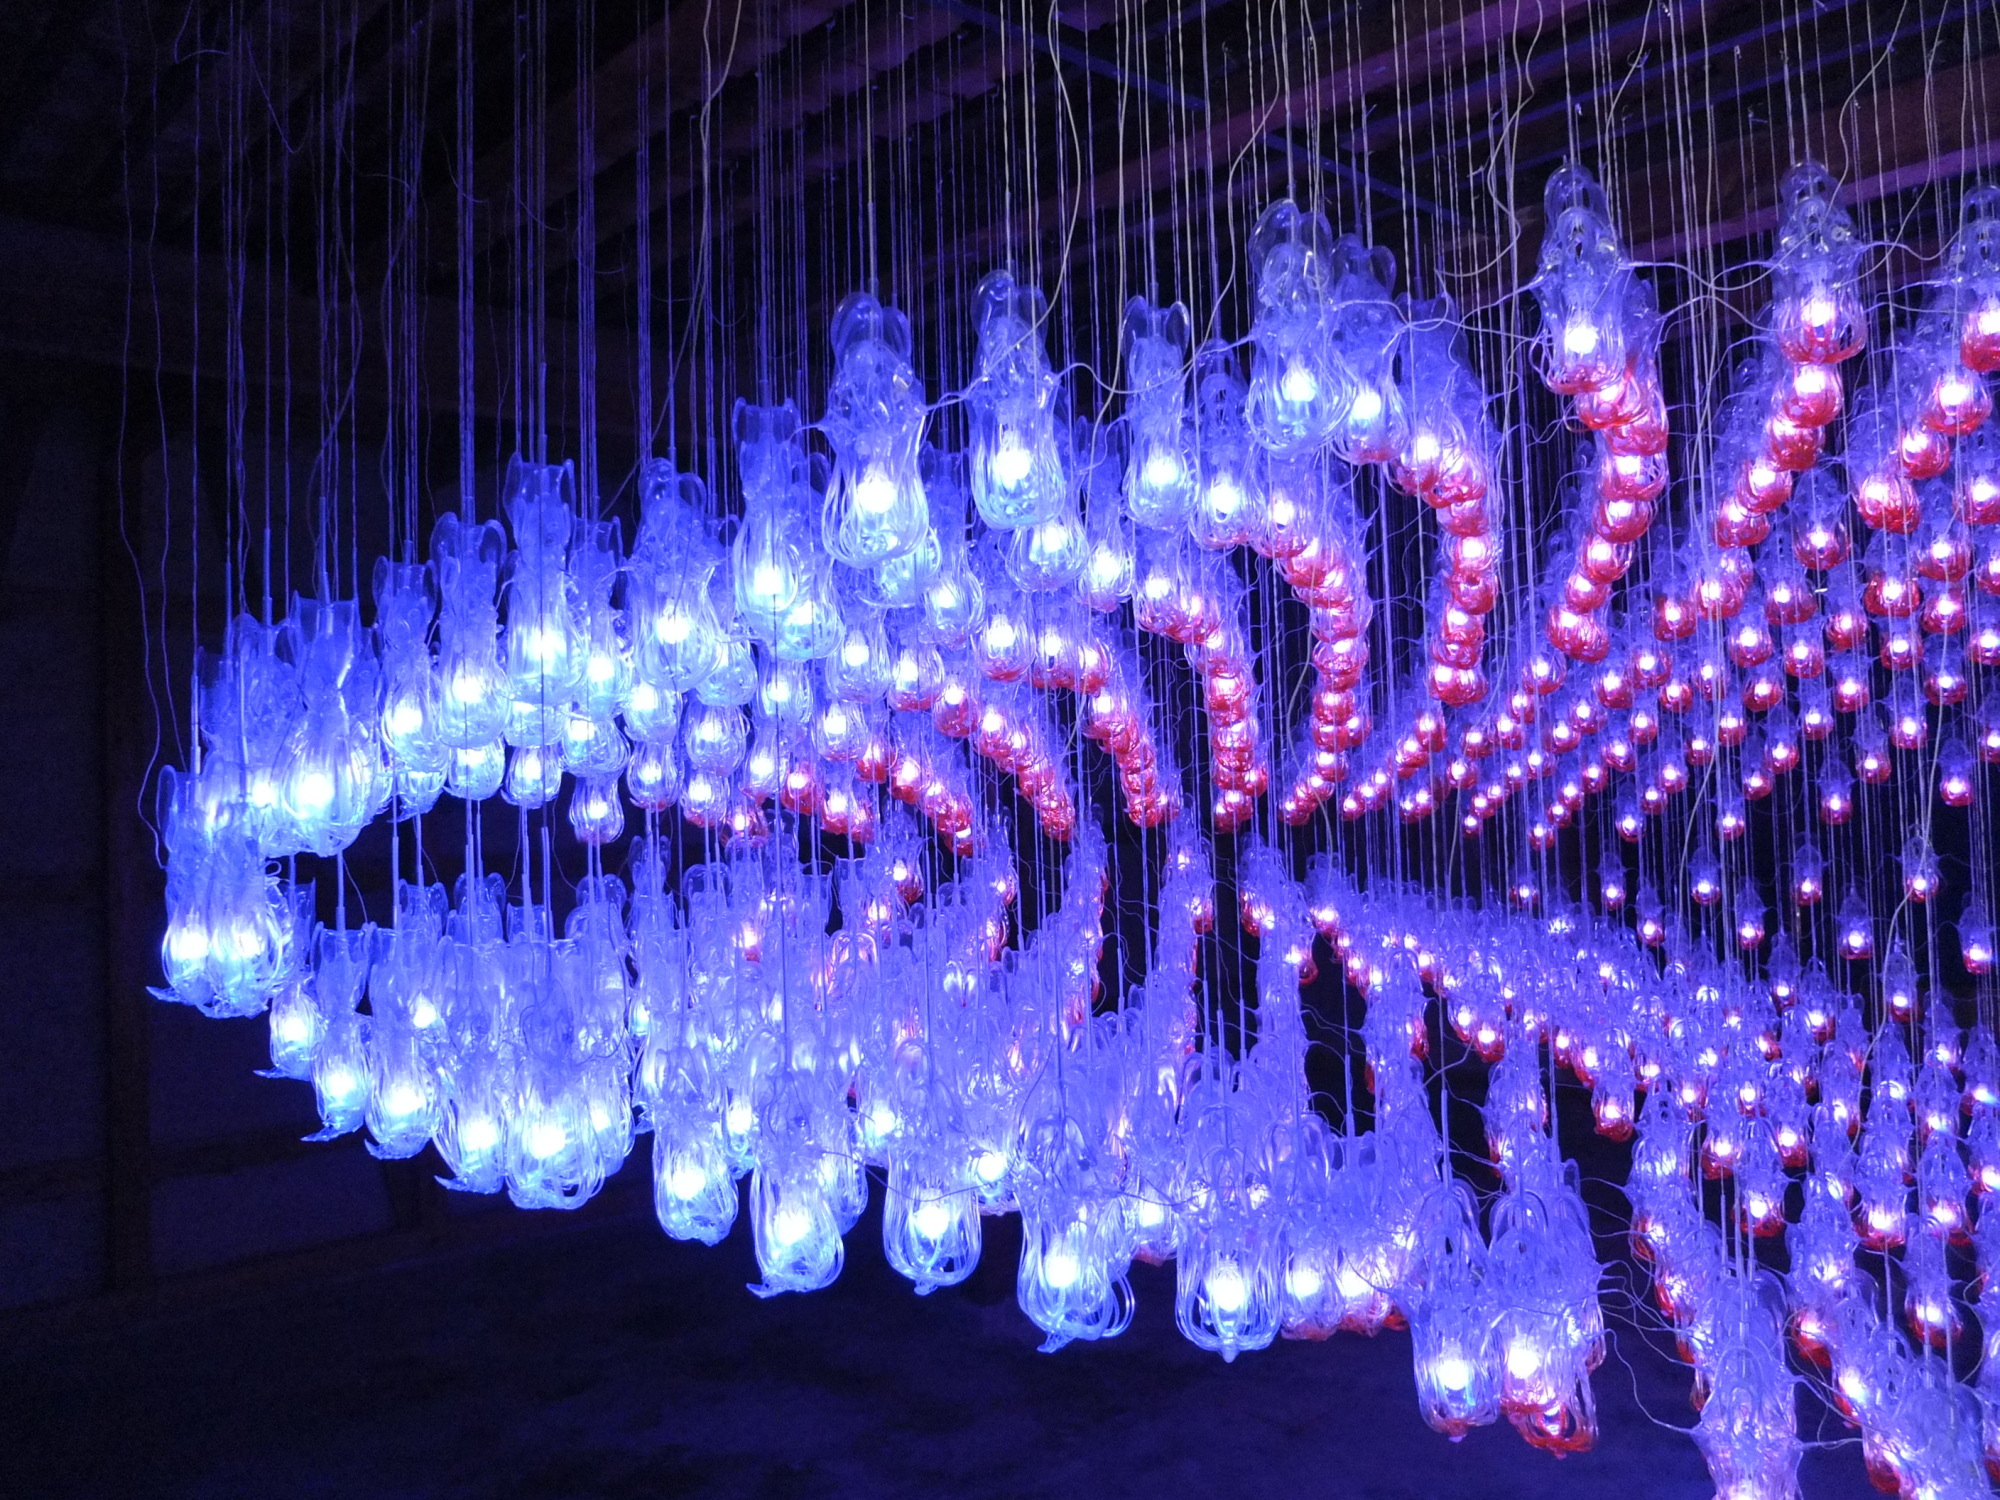 Lit up: 'Magasinoaplas' by Shimpei Kawai is a biennale highlight. | KATHERINE WHATLEY